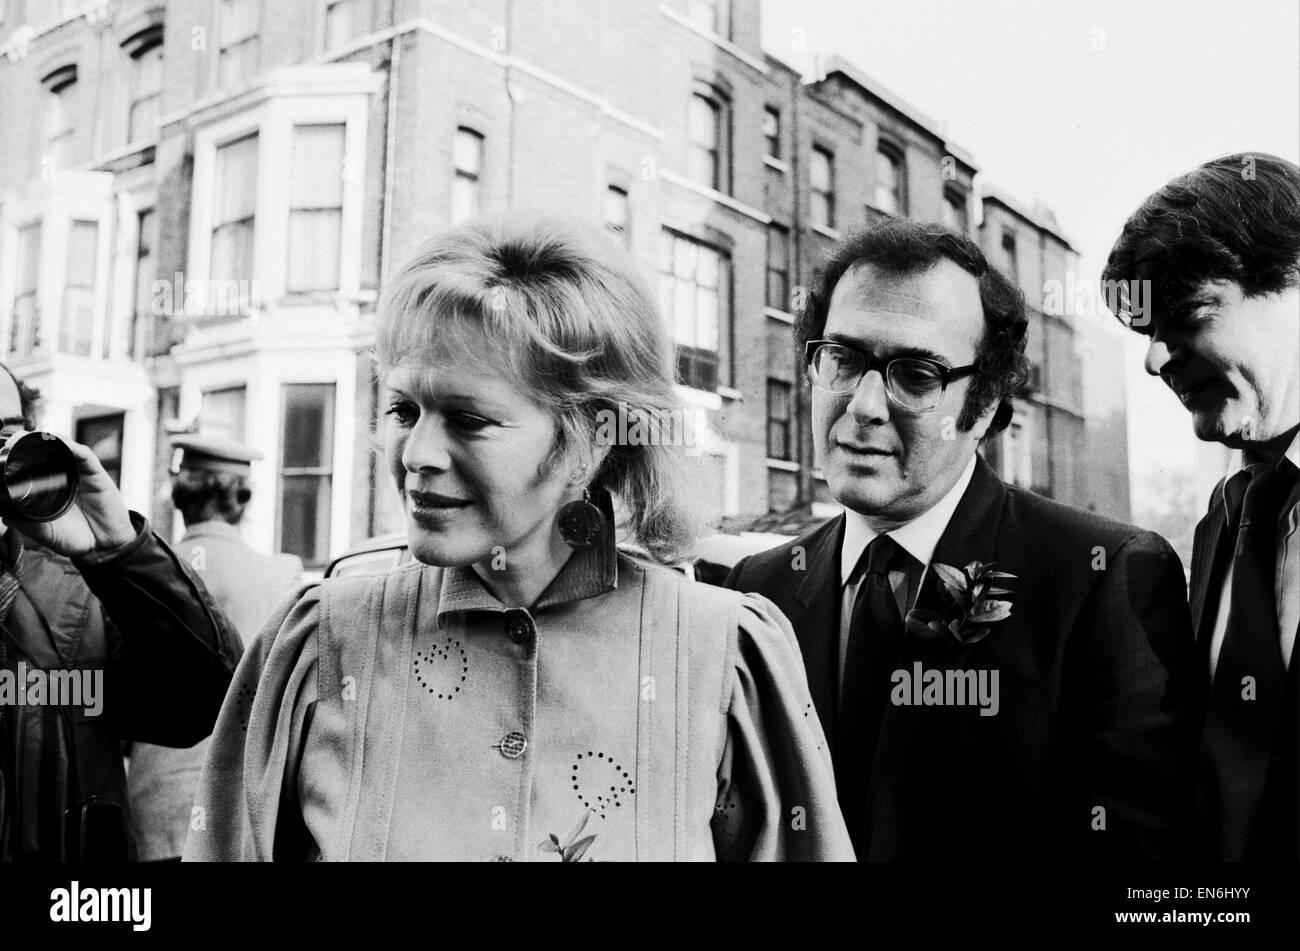 Wedding of playwright Harold Pinter and author Lady Antonia Fraser at Kensington Registry Office. 27th November - Stock Image